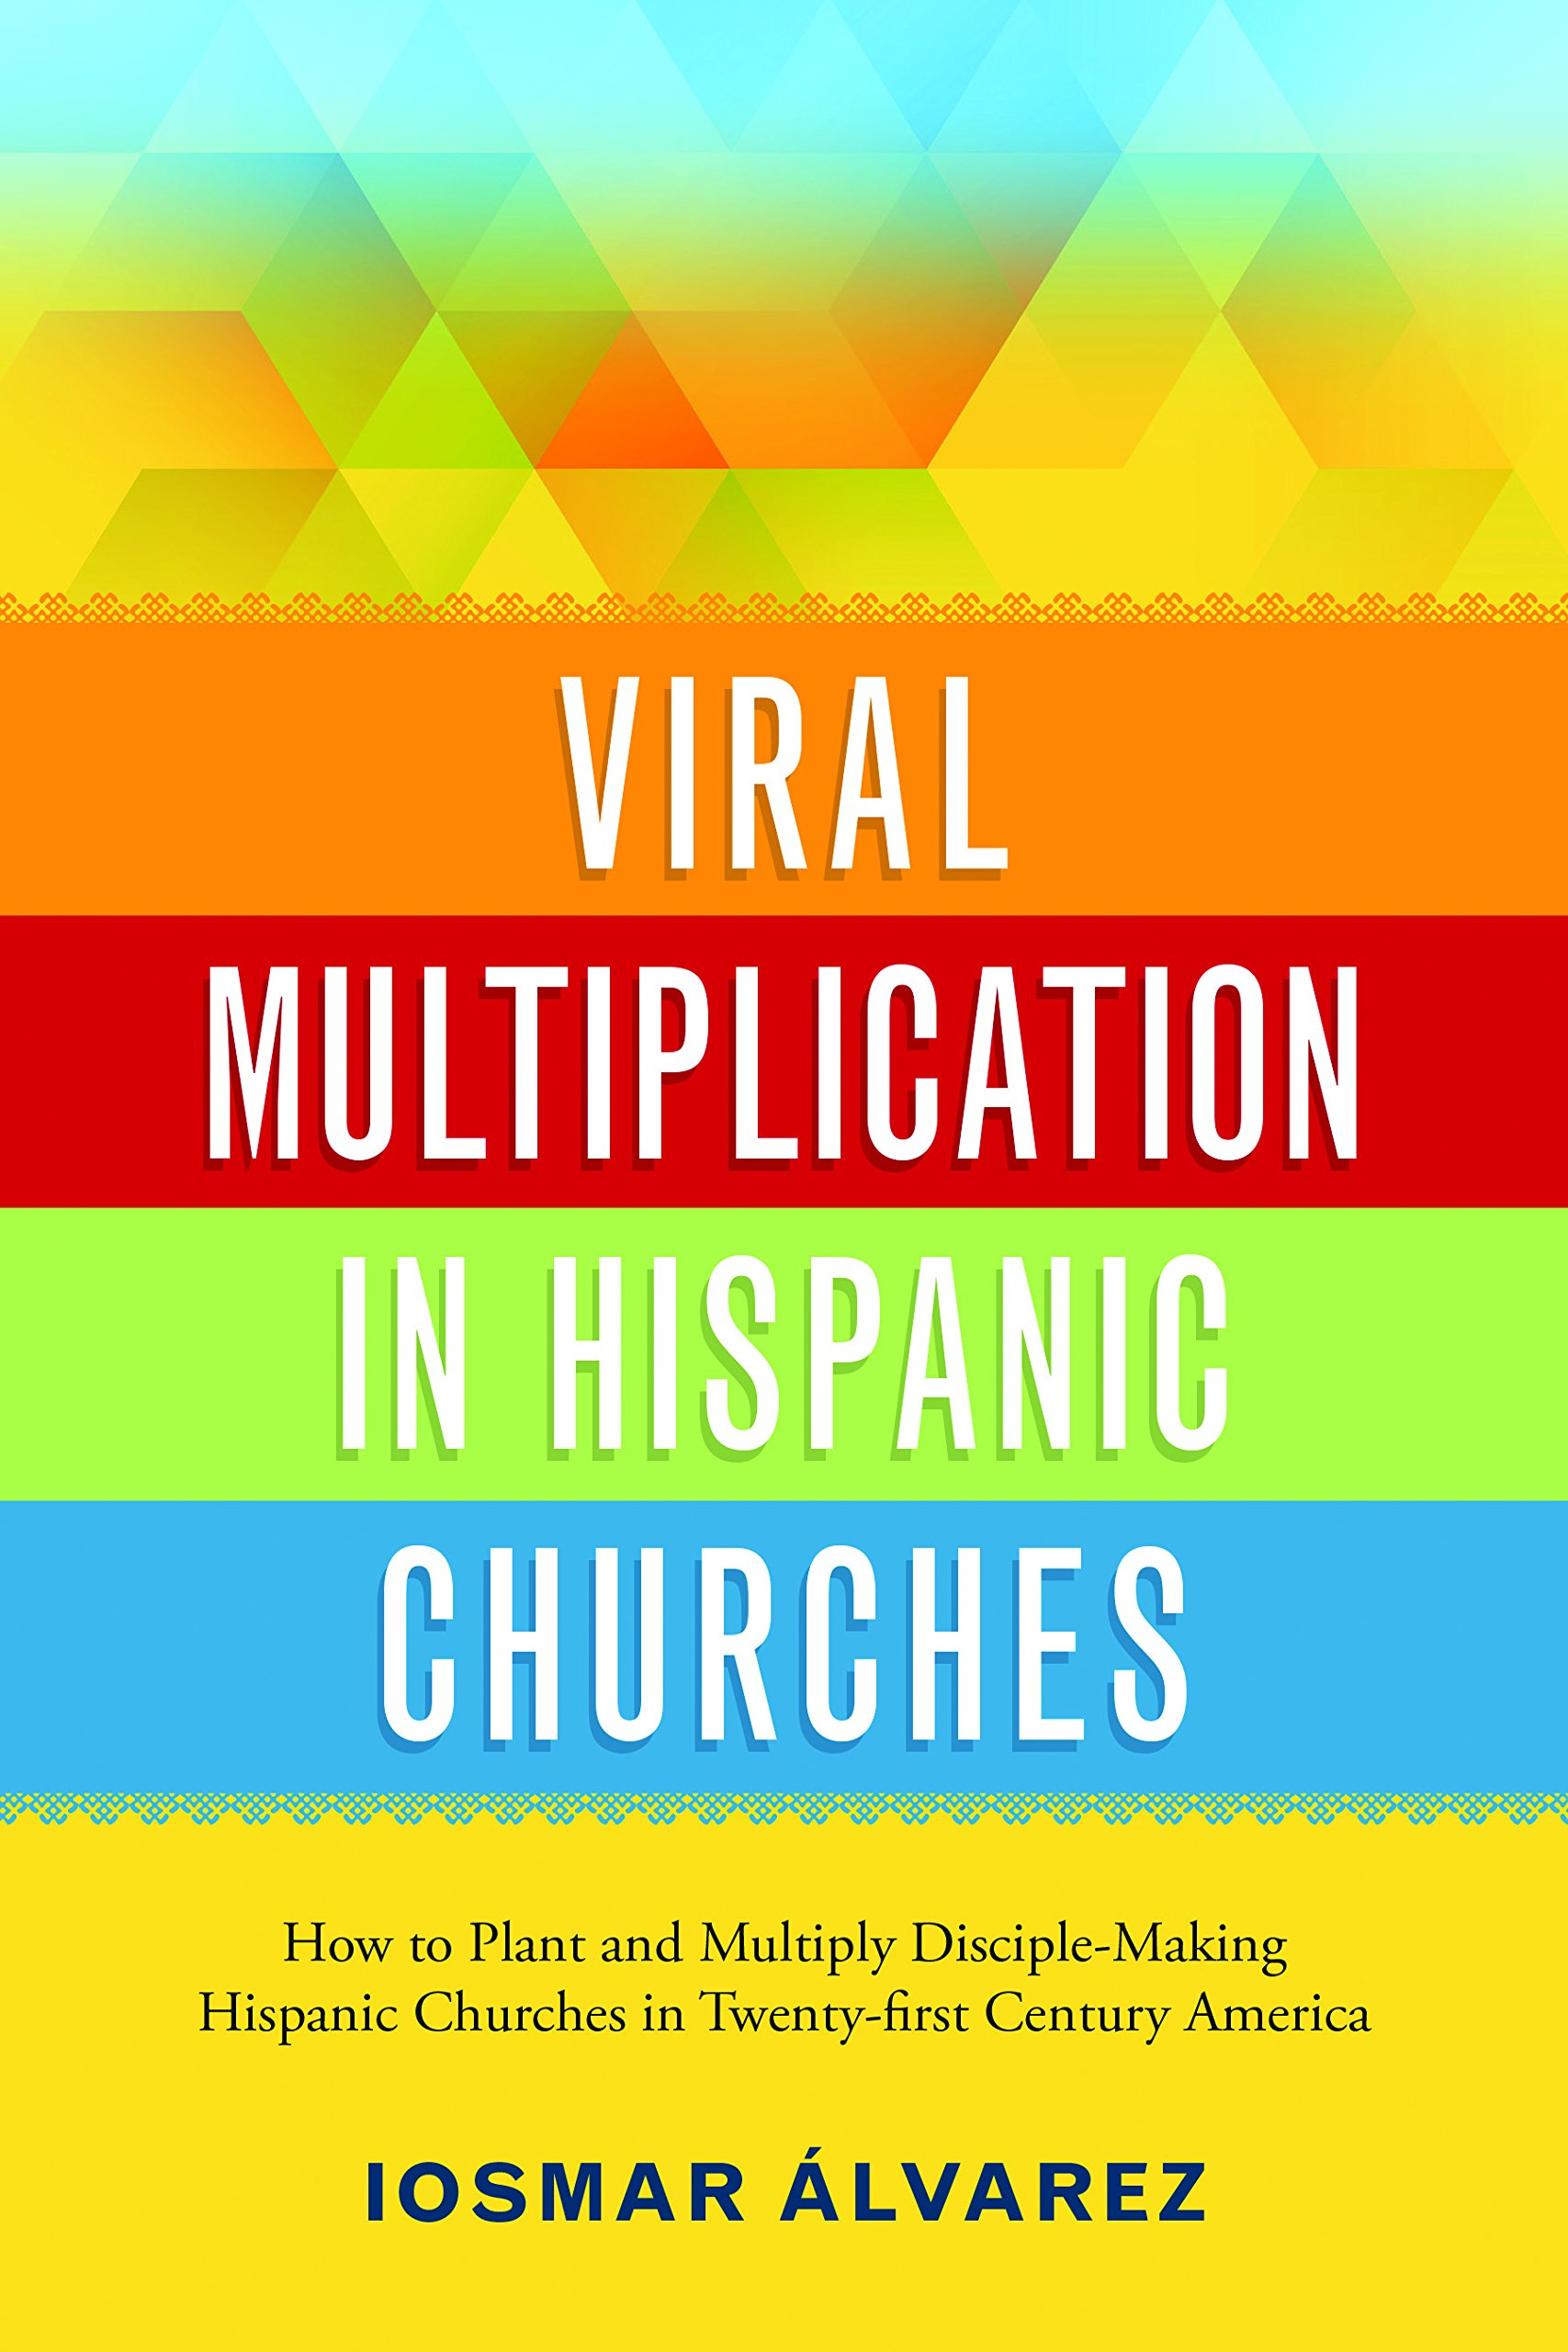 Viral Multiplication in Hispanic Churches: How to Plant and Multiply Disciple-Making Churches in the Twenty-first Century America